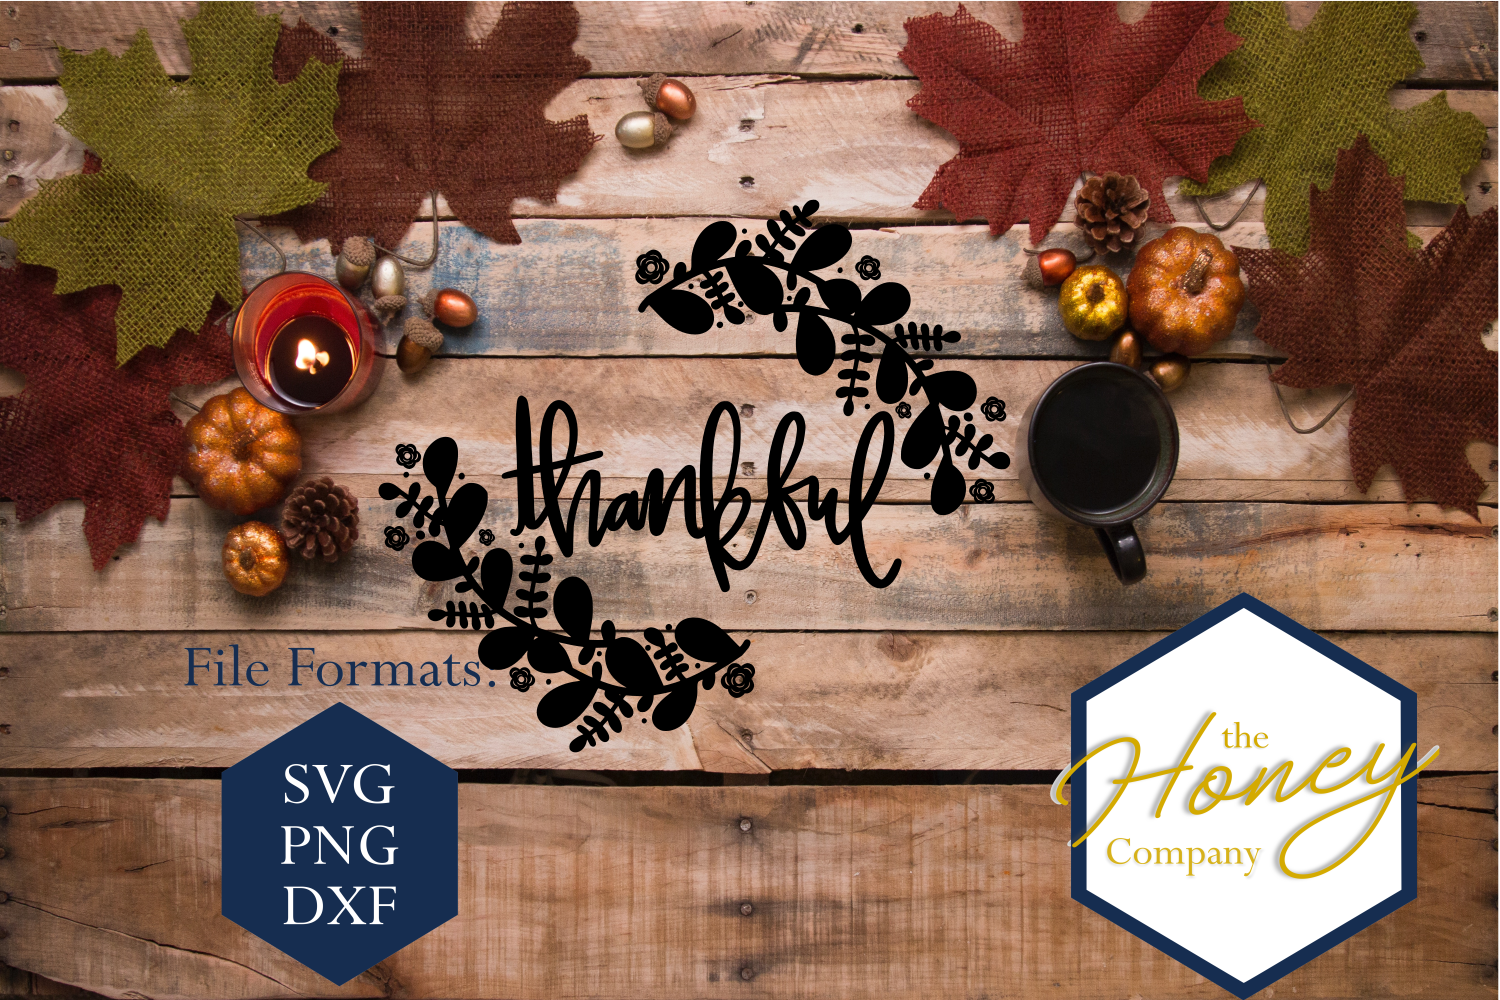 Thankful SVG PNG DXF Floral Doodle Hand Lettered Thanks example image 1